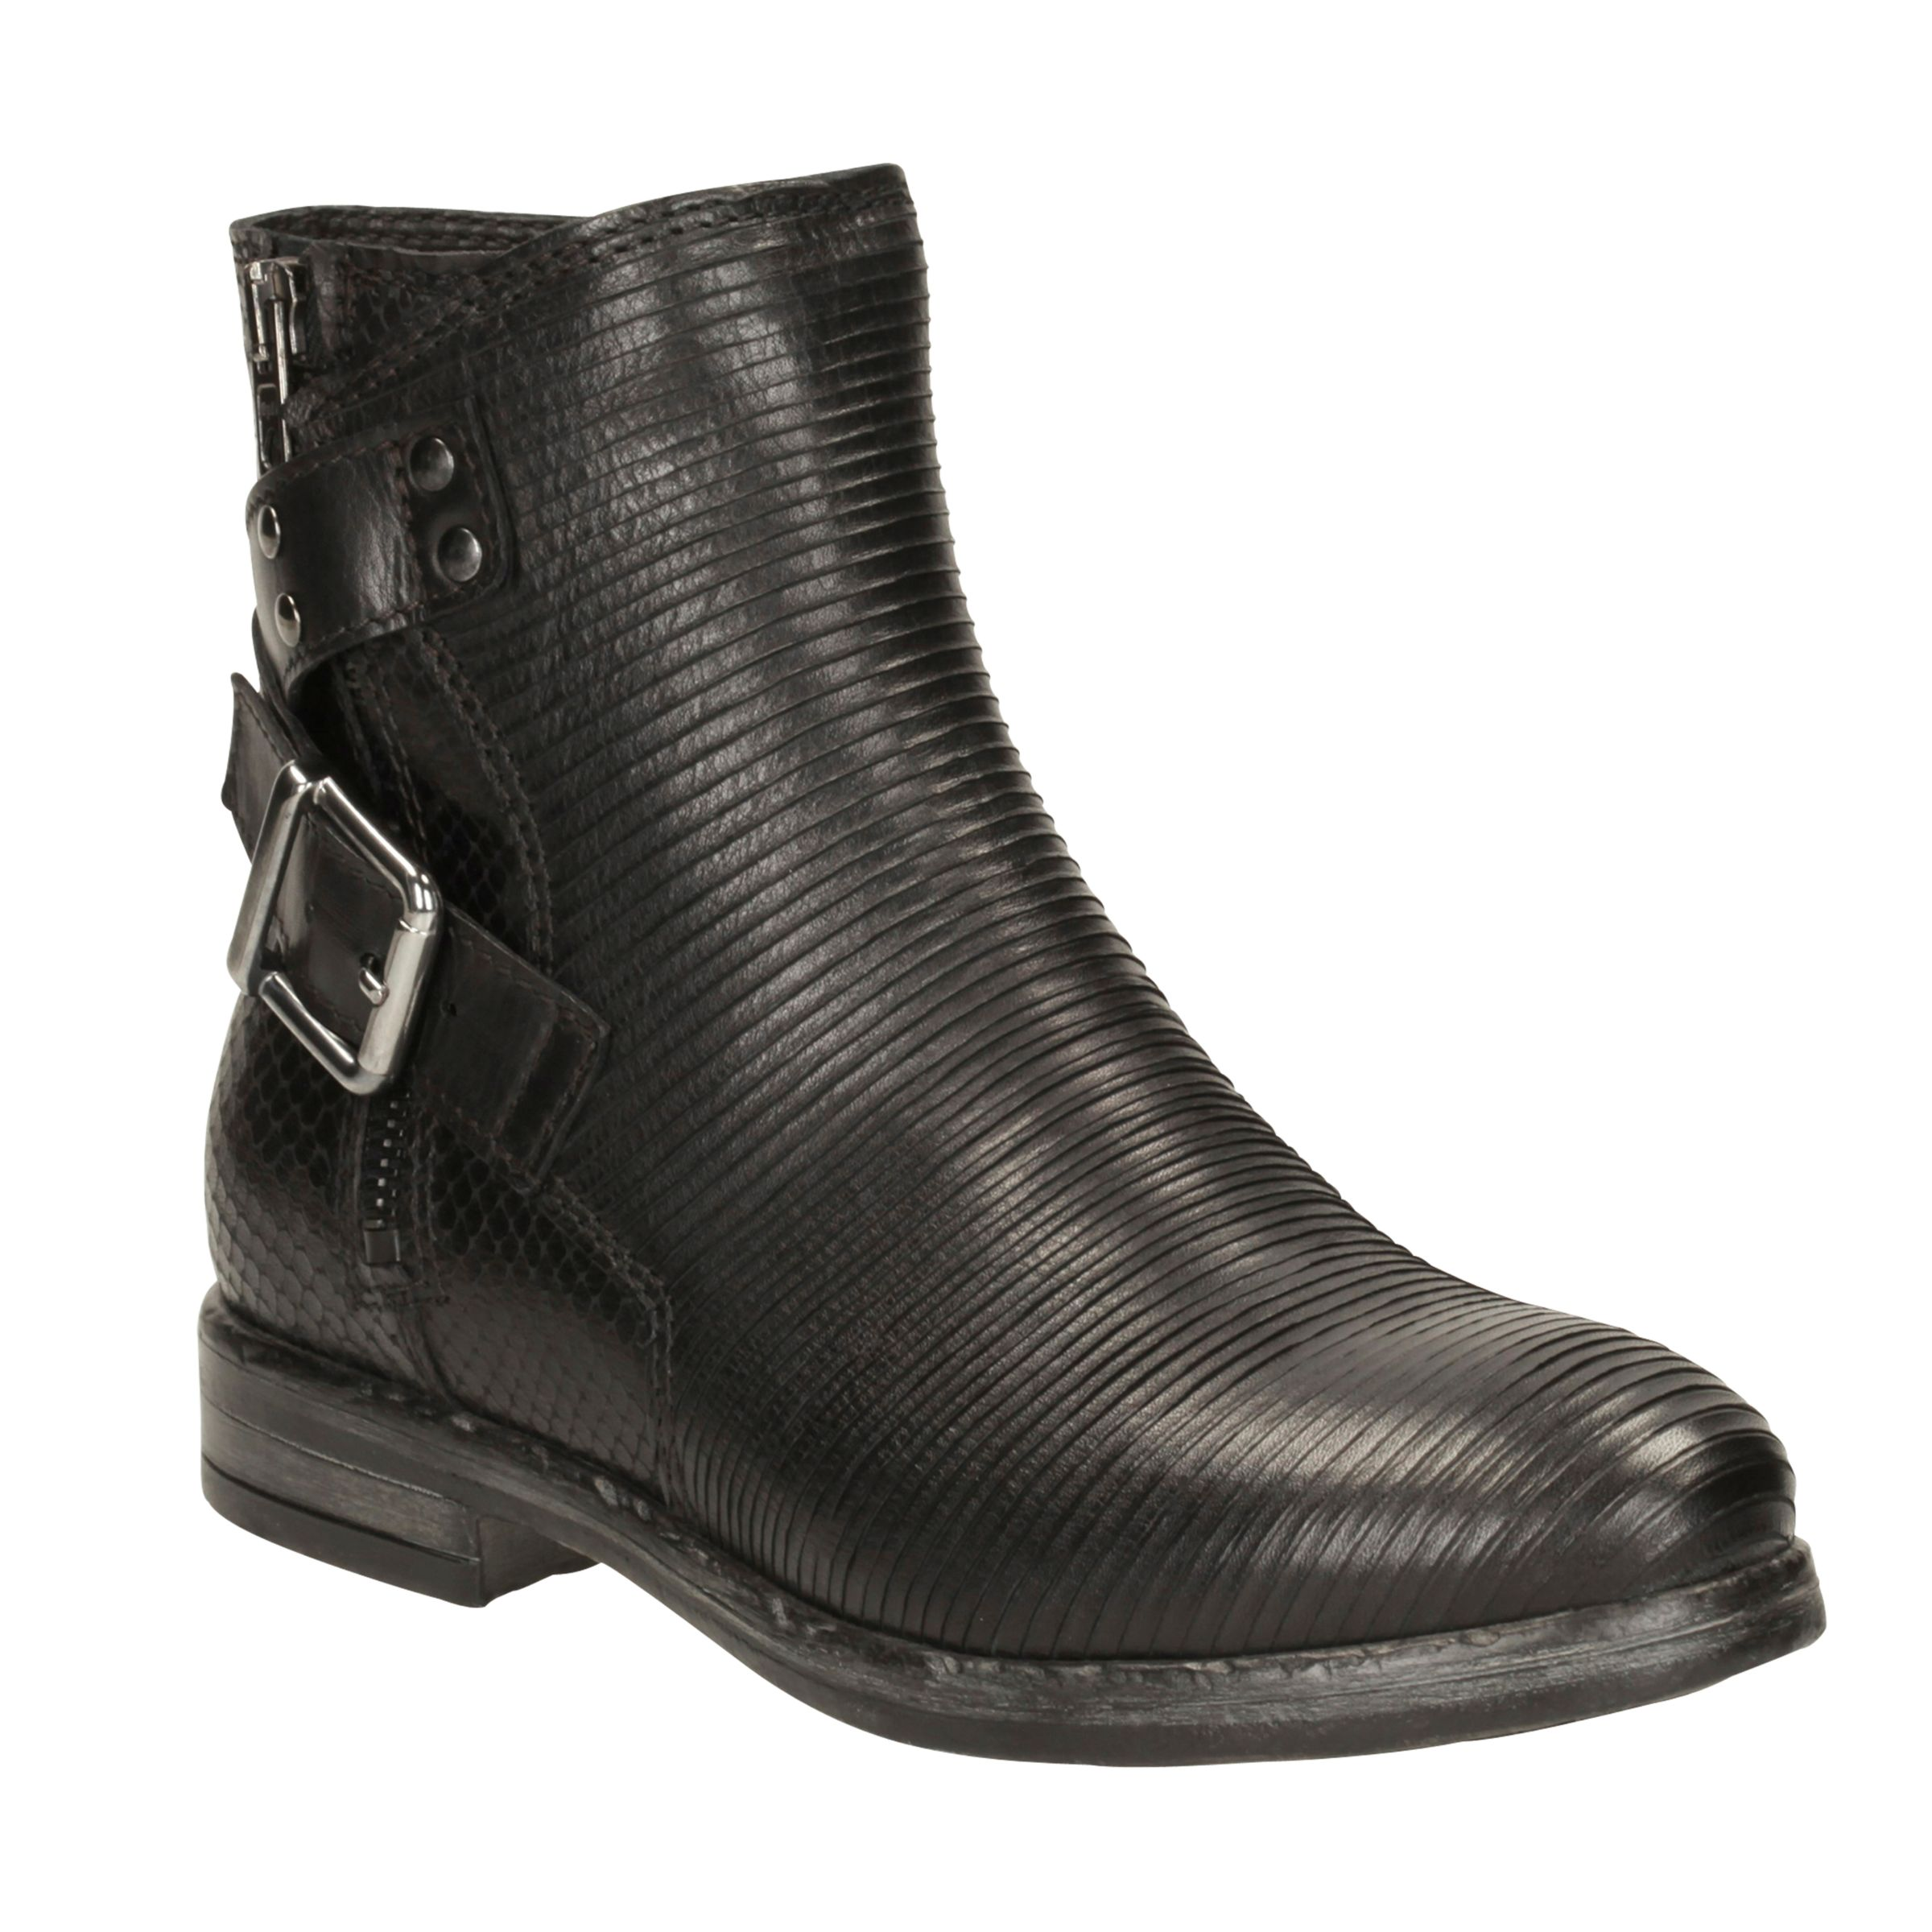 7665f40b0c5 Clarks Sicilly Dove Buckle Ankle Boots at John Lewis & Partners